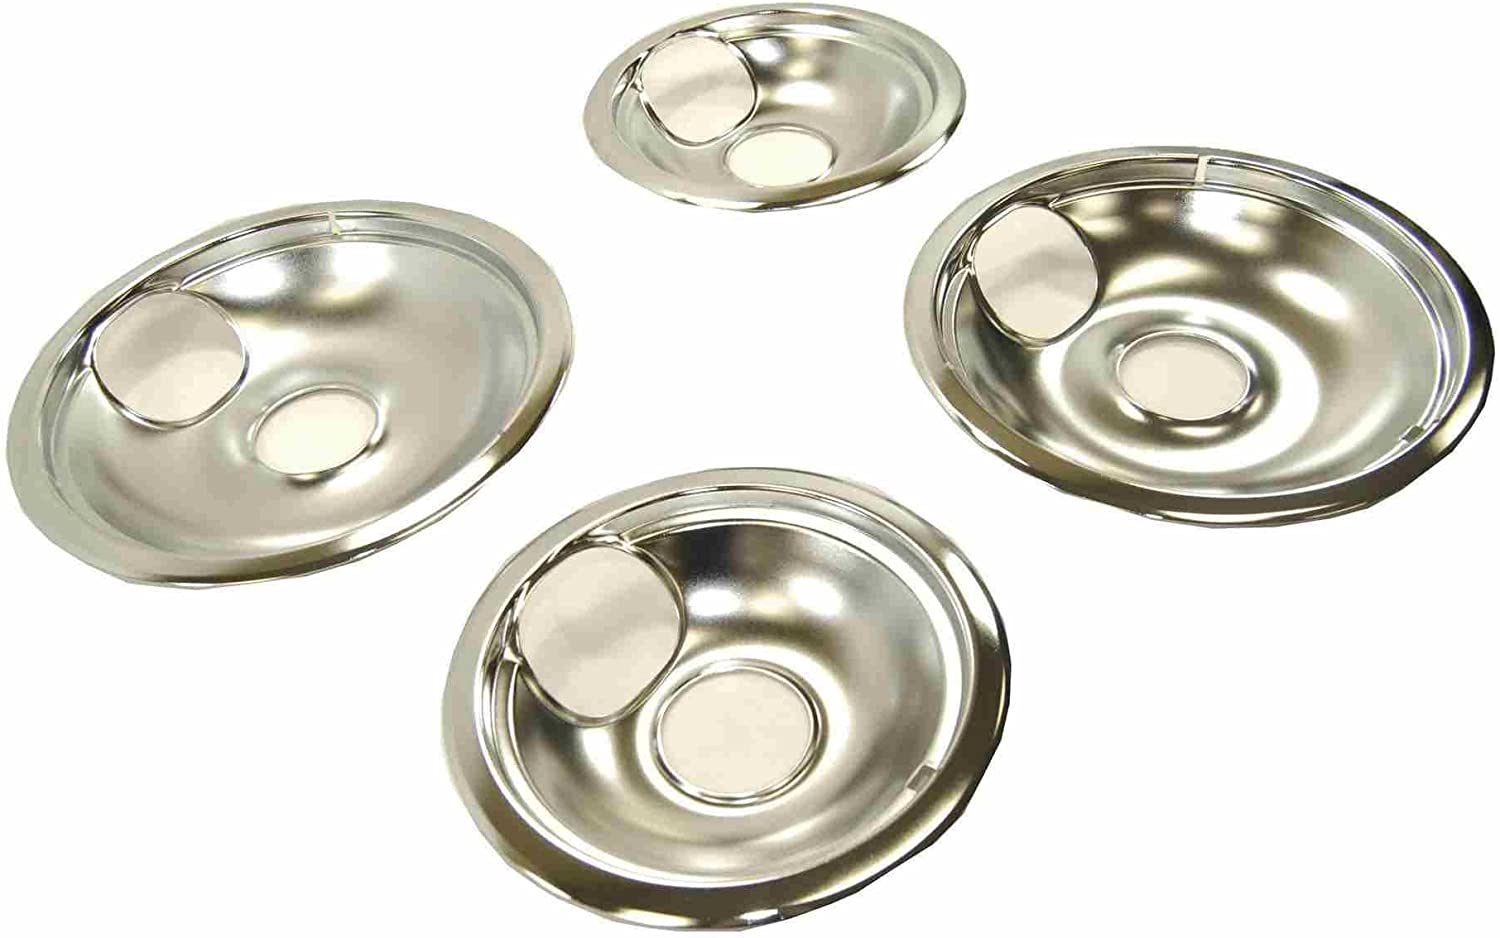 A068C GE Drip Bowl Set for Electric Ranges (4-Pack) Fits Most Leading Brands Except GE and Hotpoint